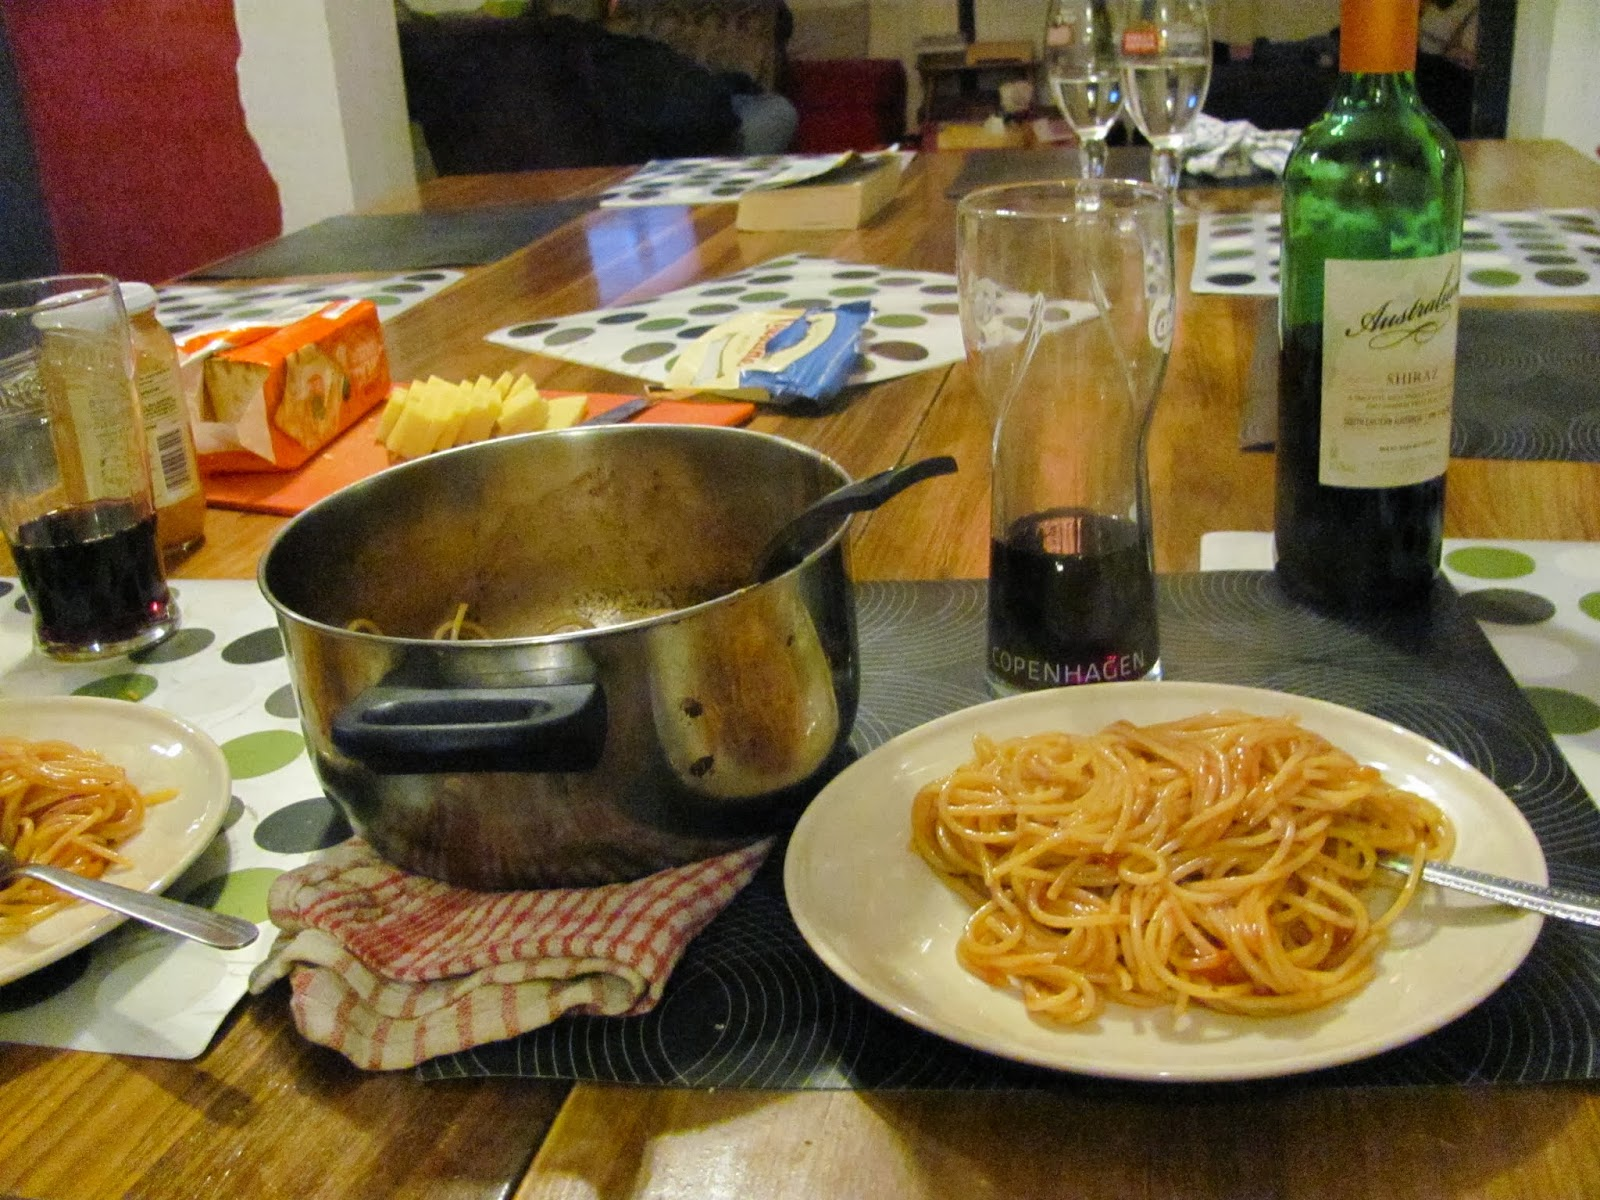 Spaghetti, cheese, crackers, and wine at Vagabonds Hostel Belfast